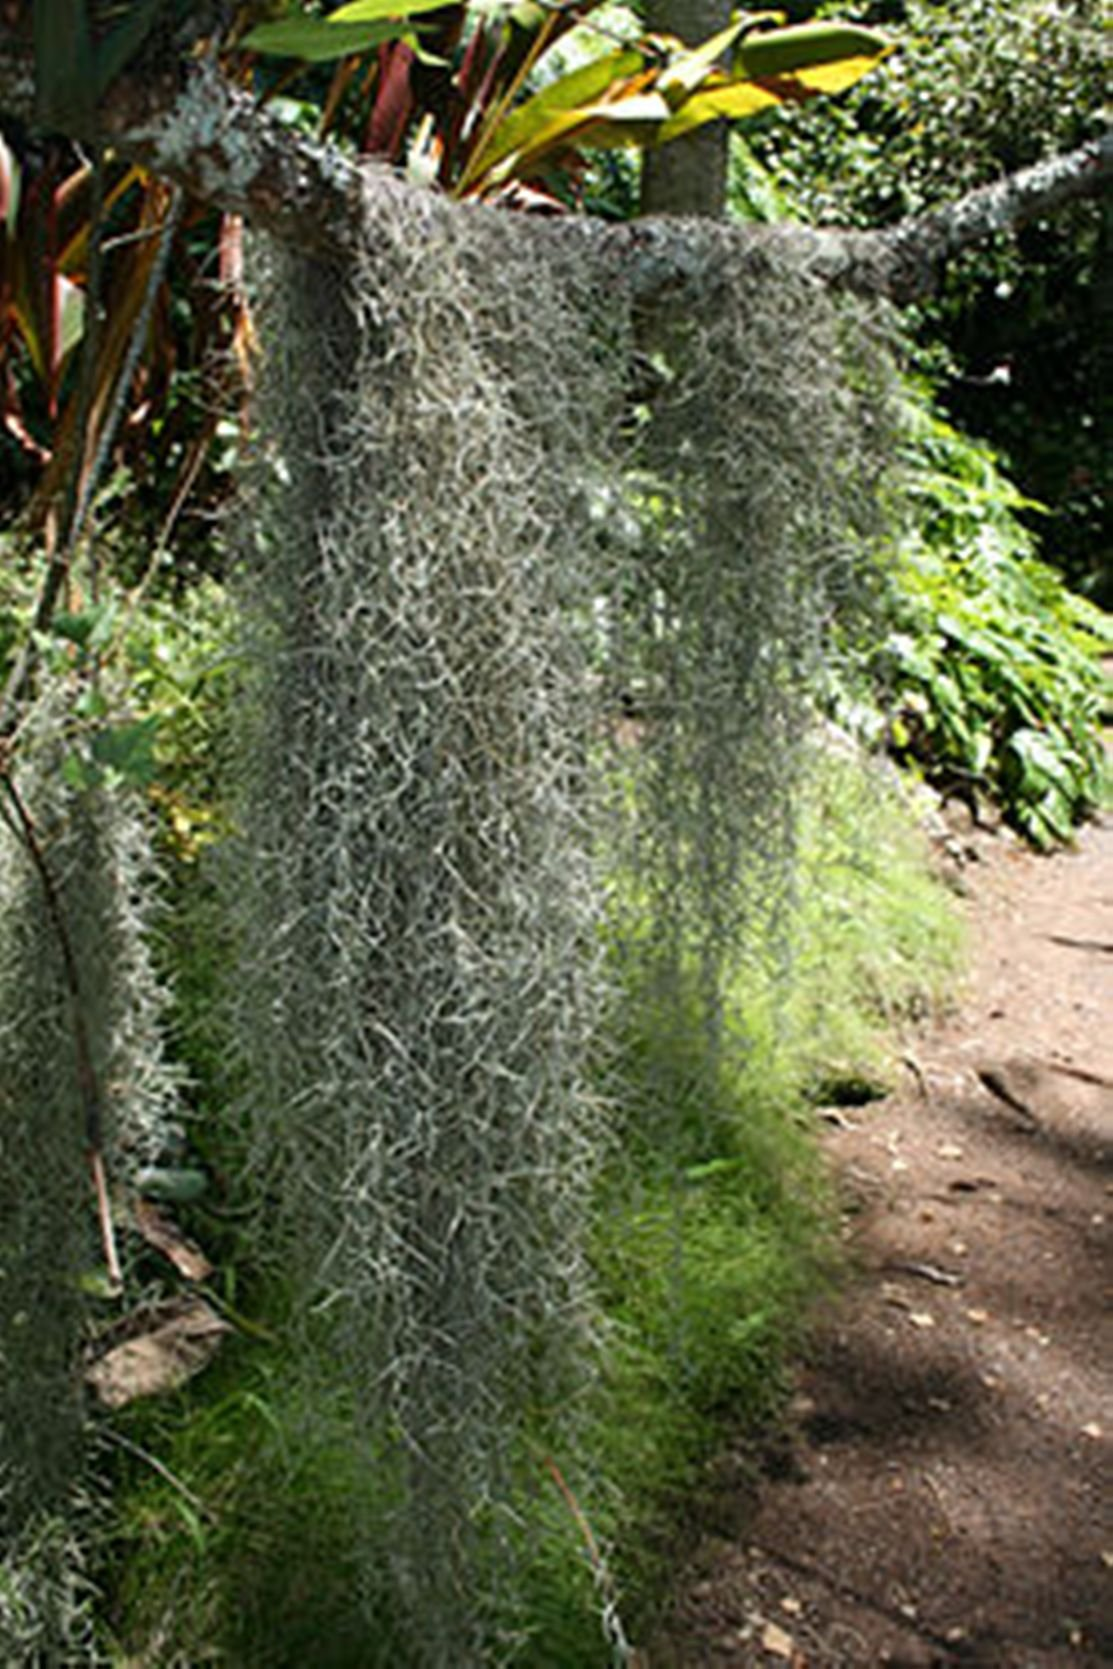 Fresh, Clean Spanish Moss Floral Decoration 28 lb Case by Moss4U (Image #4)